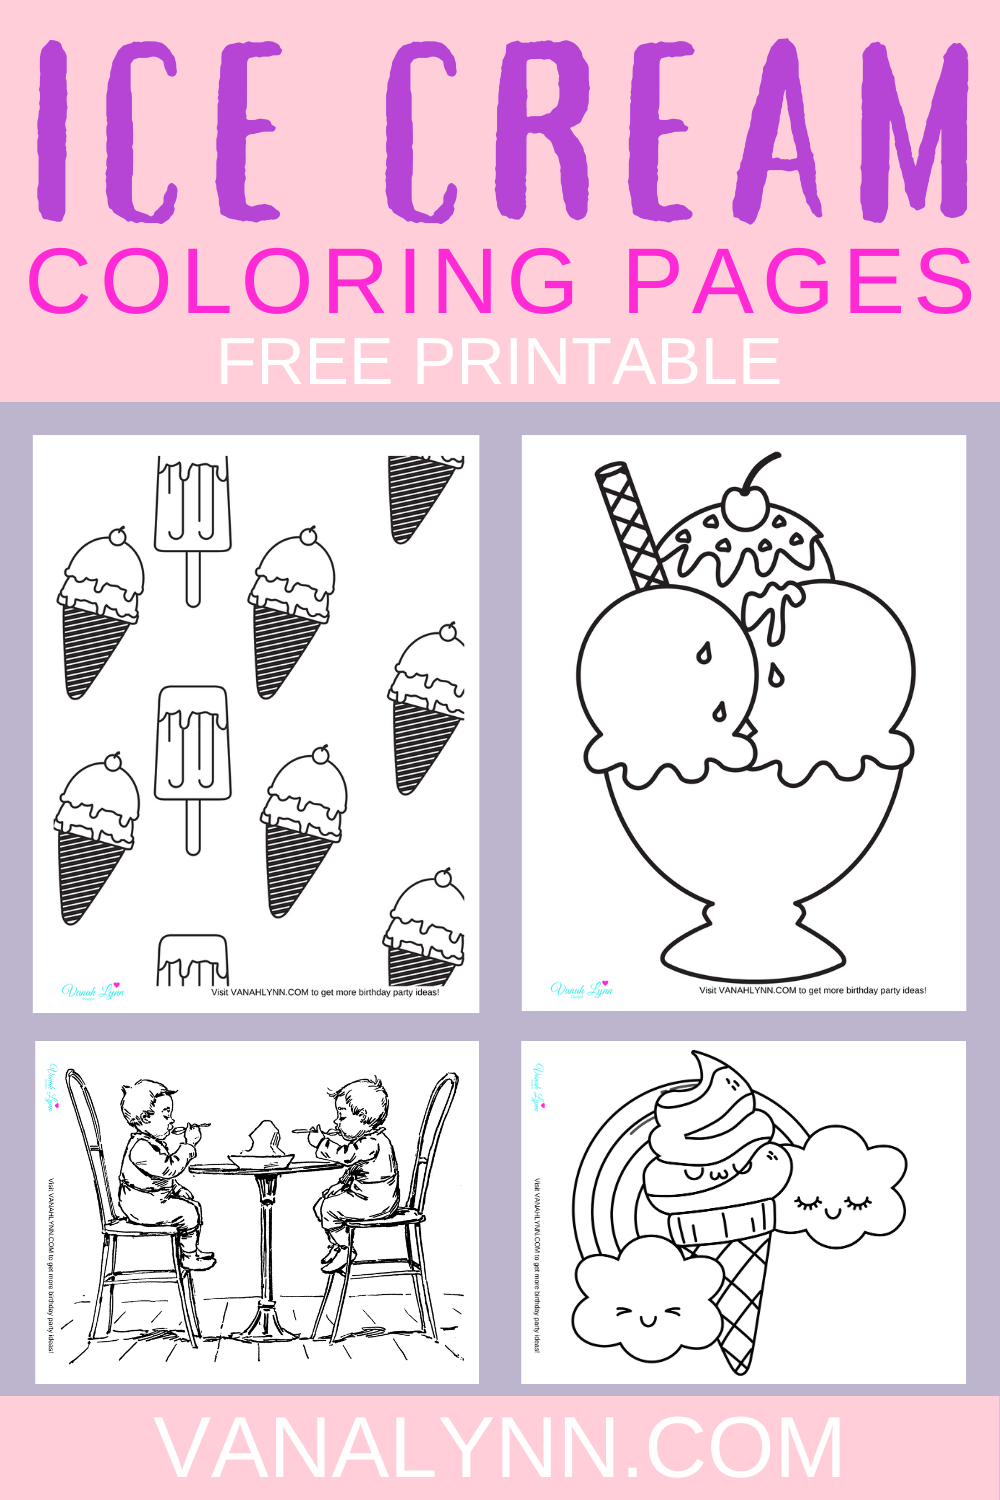 free download: ice cream coloring pages for an ice cream 1st birthday party